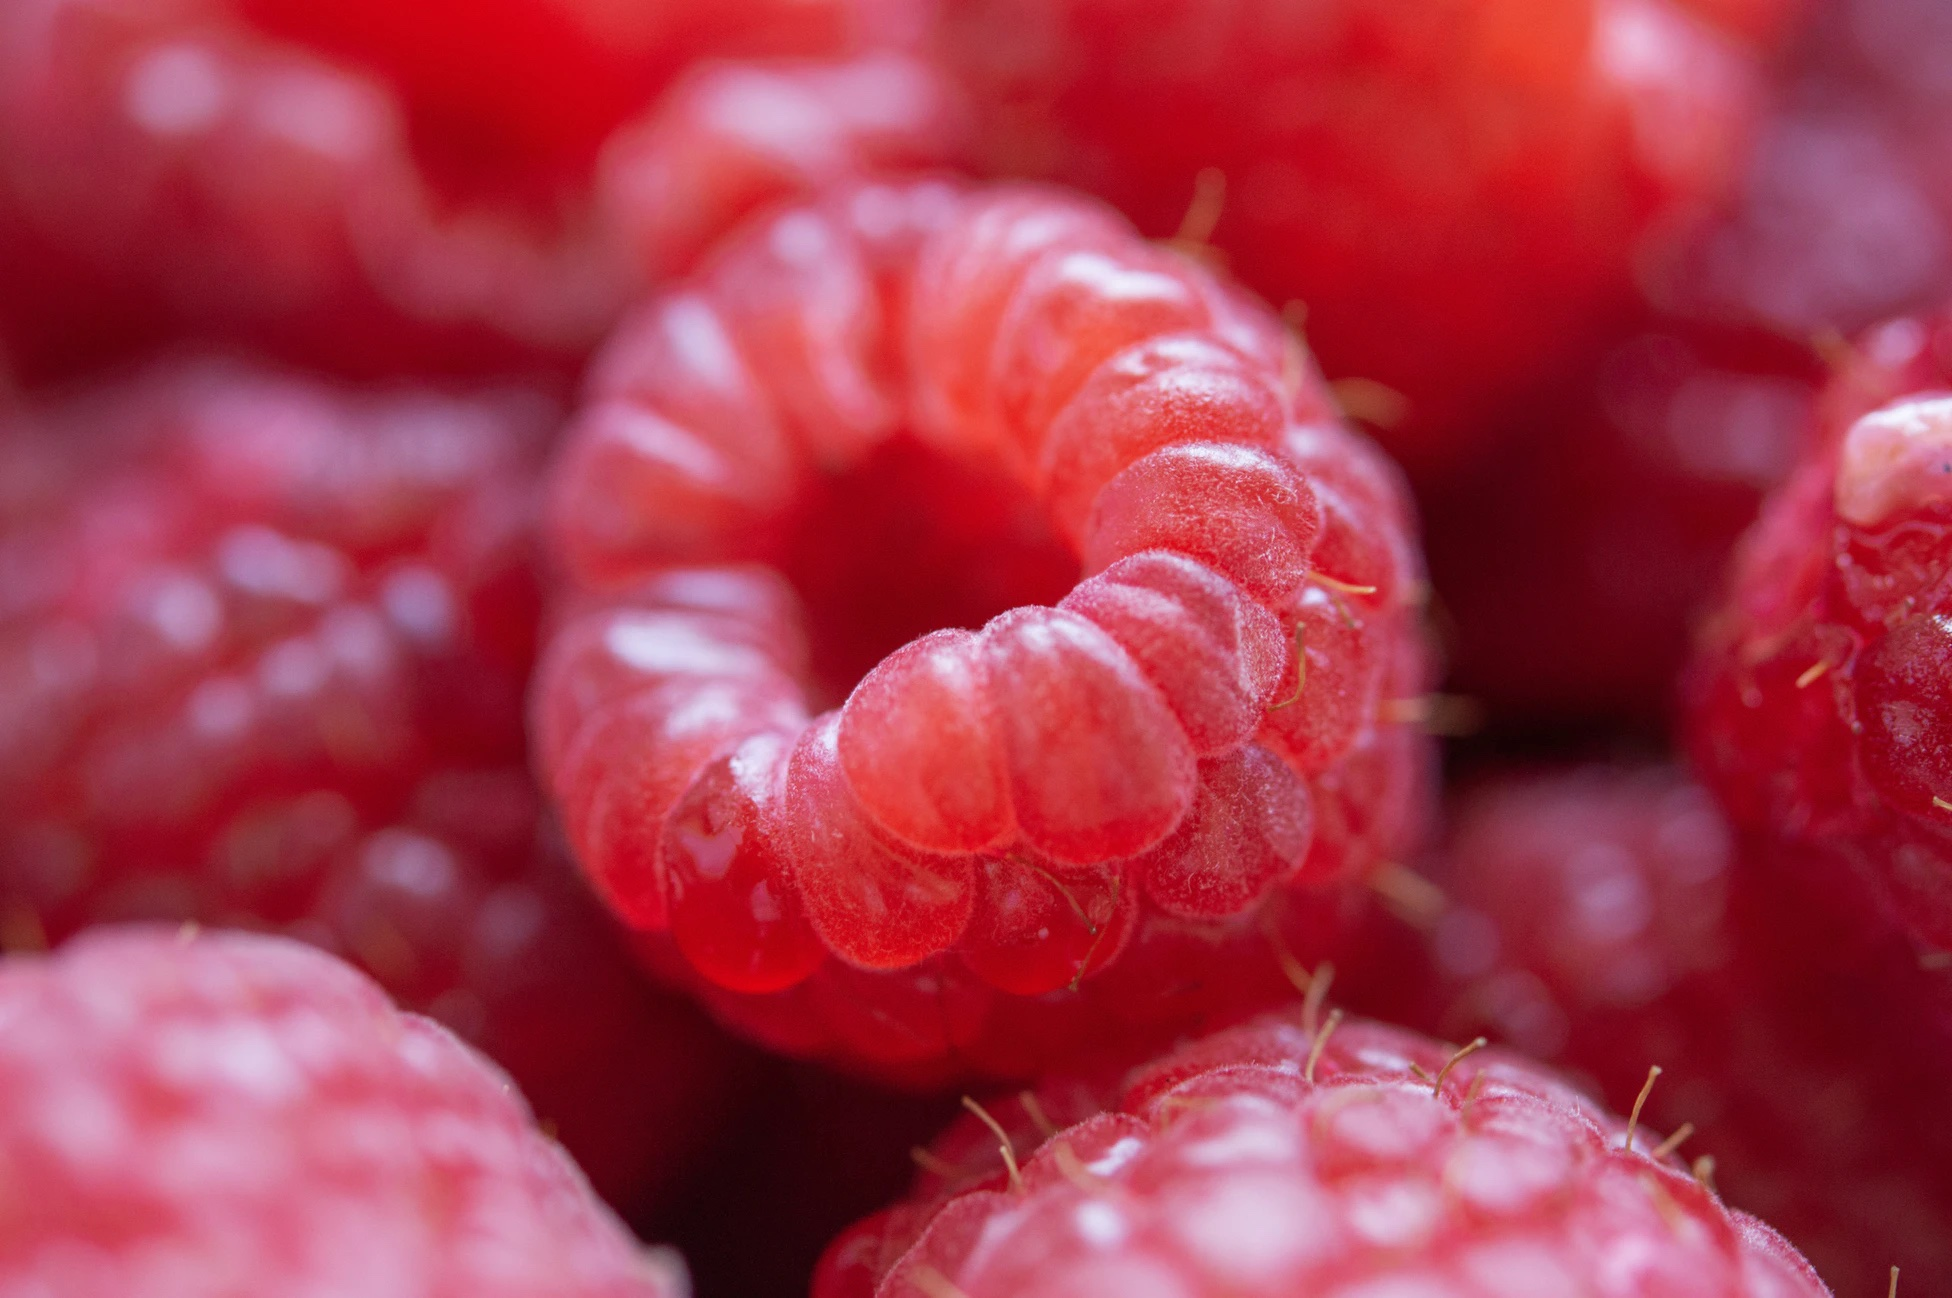 Raspberries photographed with depth of field